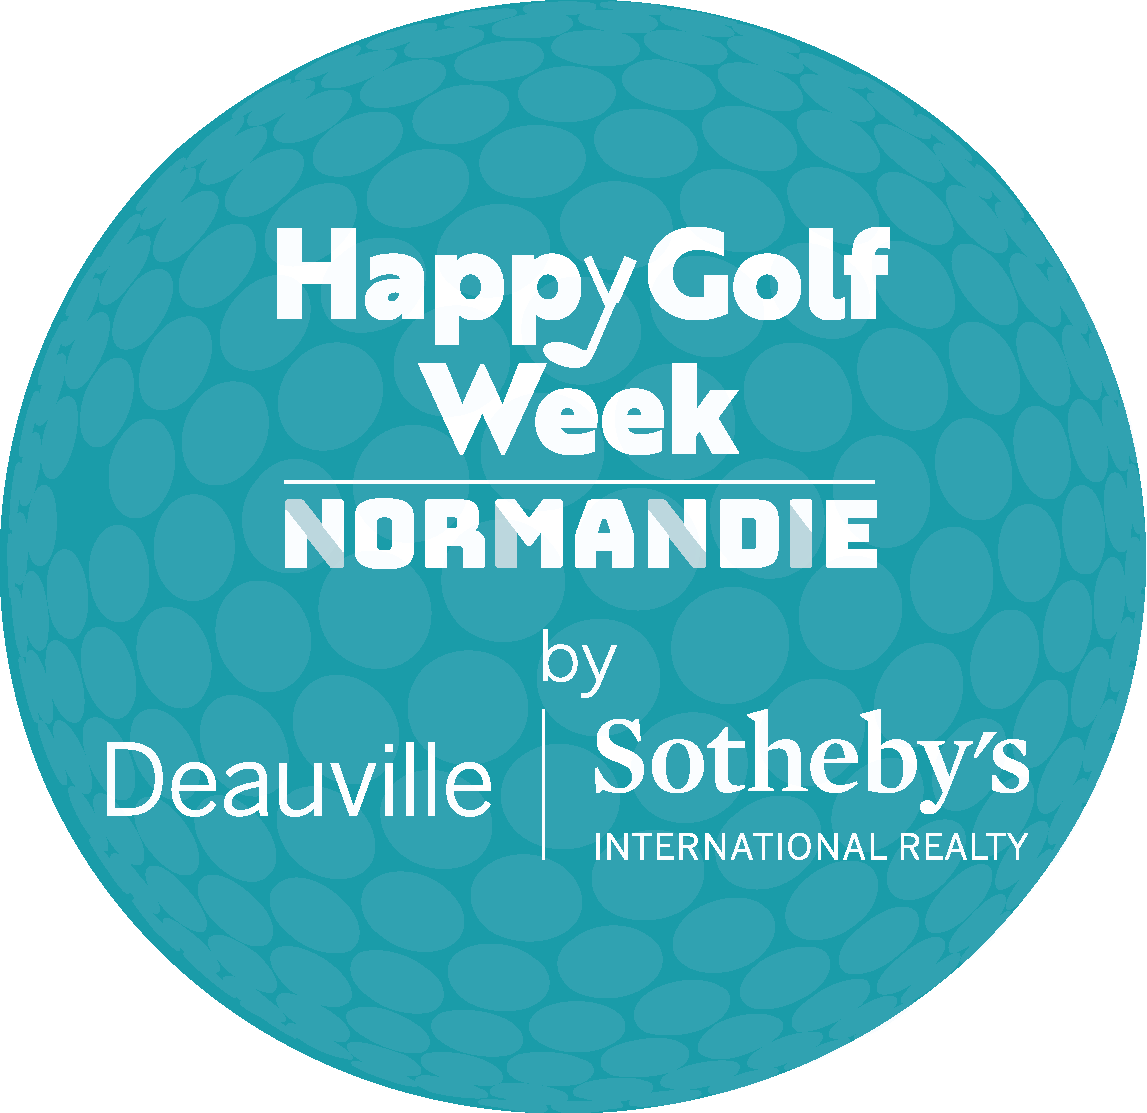 Happy Golf Week  Normandie by Deauville Sotheby's International Realty